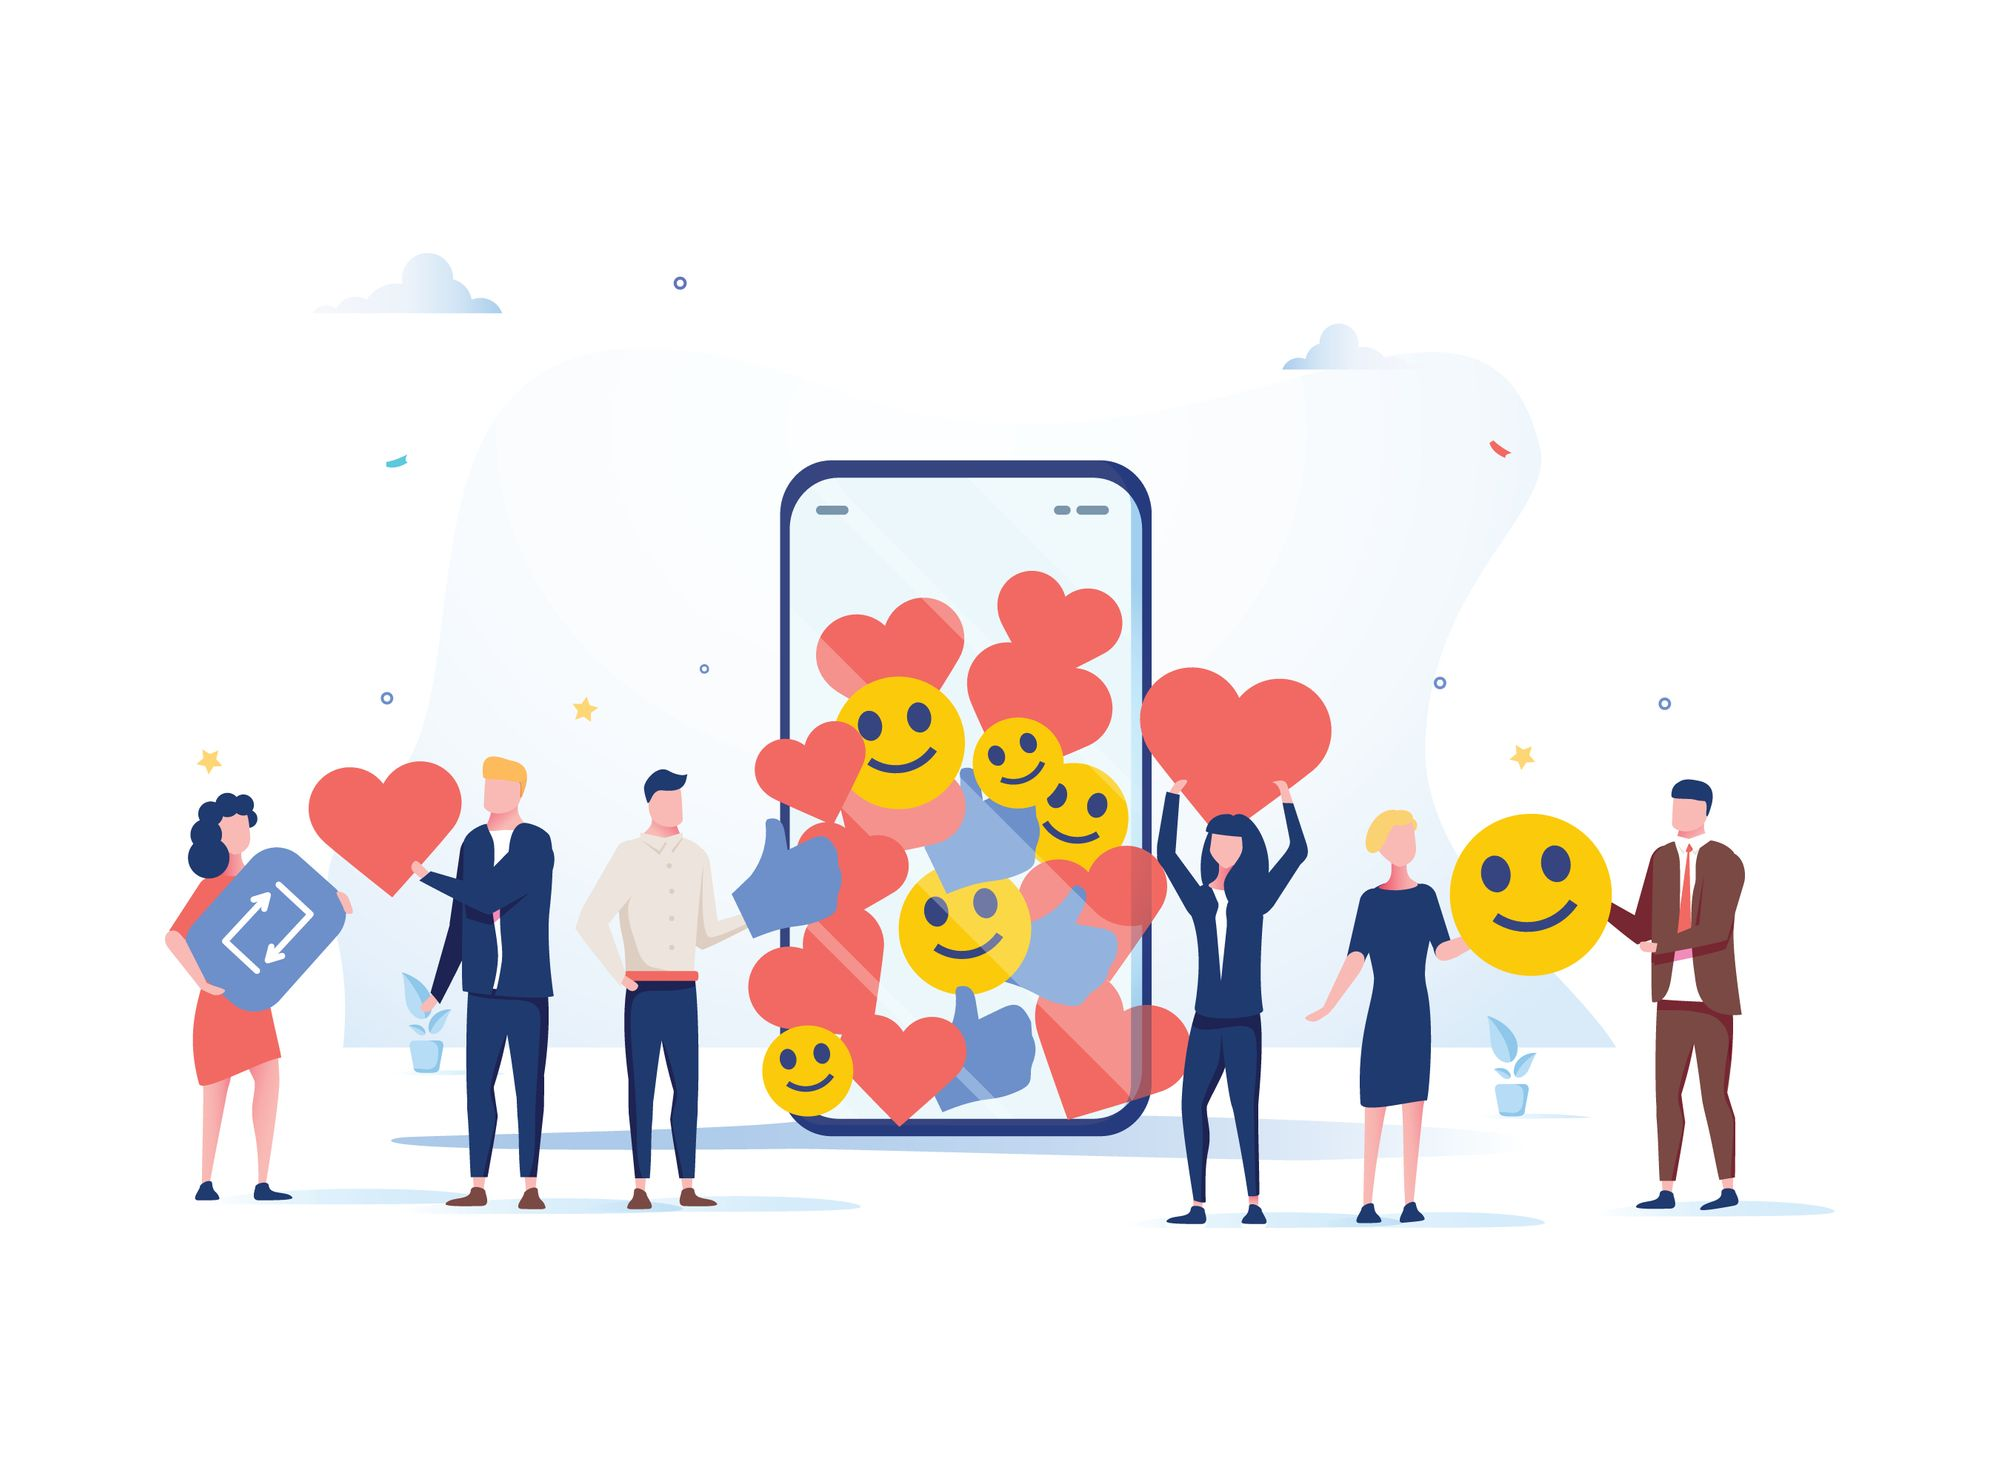 group of people with like, comment, follower icon